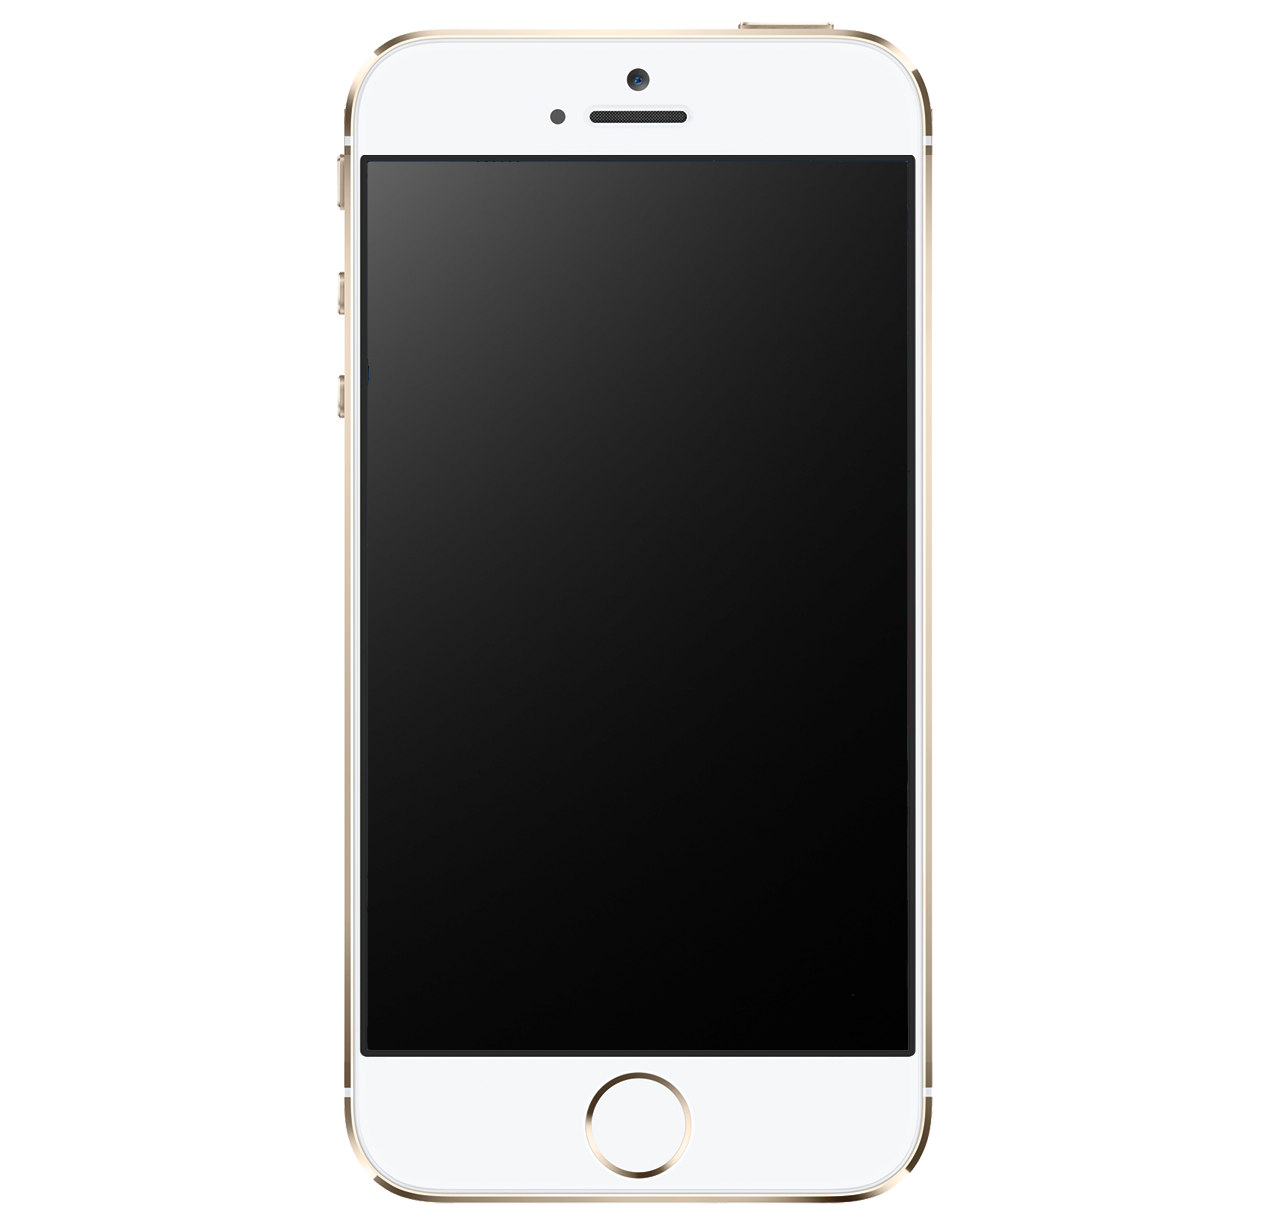 Iphone clipart gold free library Iphone Png Image Gold free library